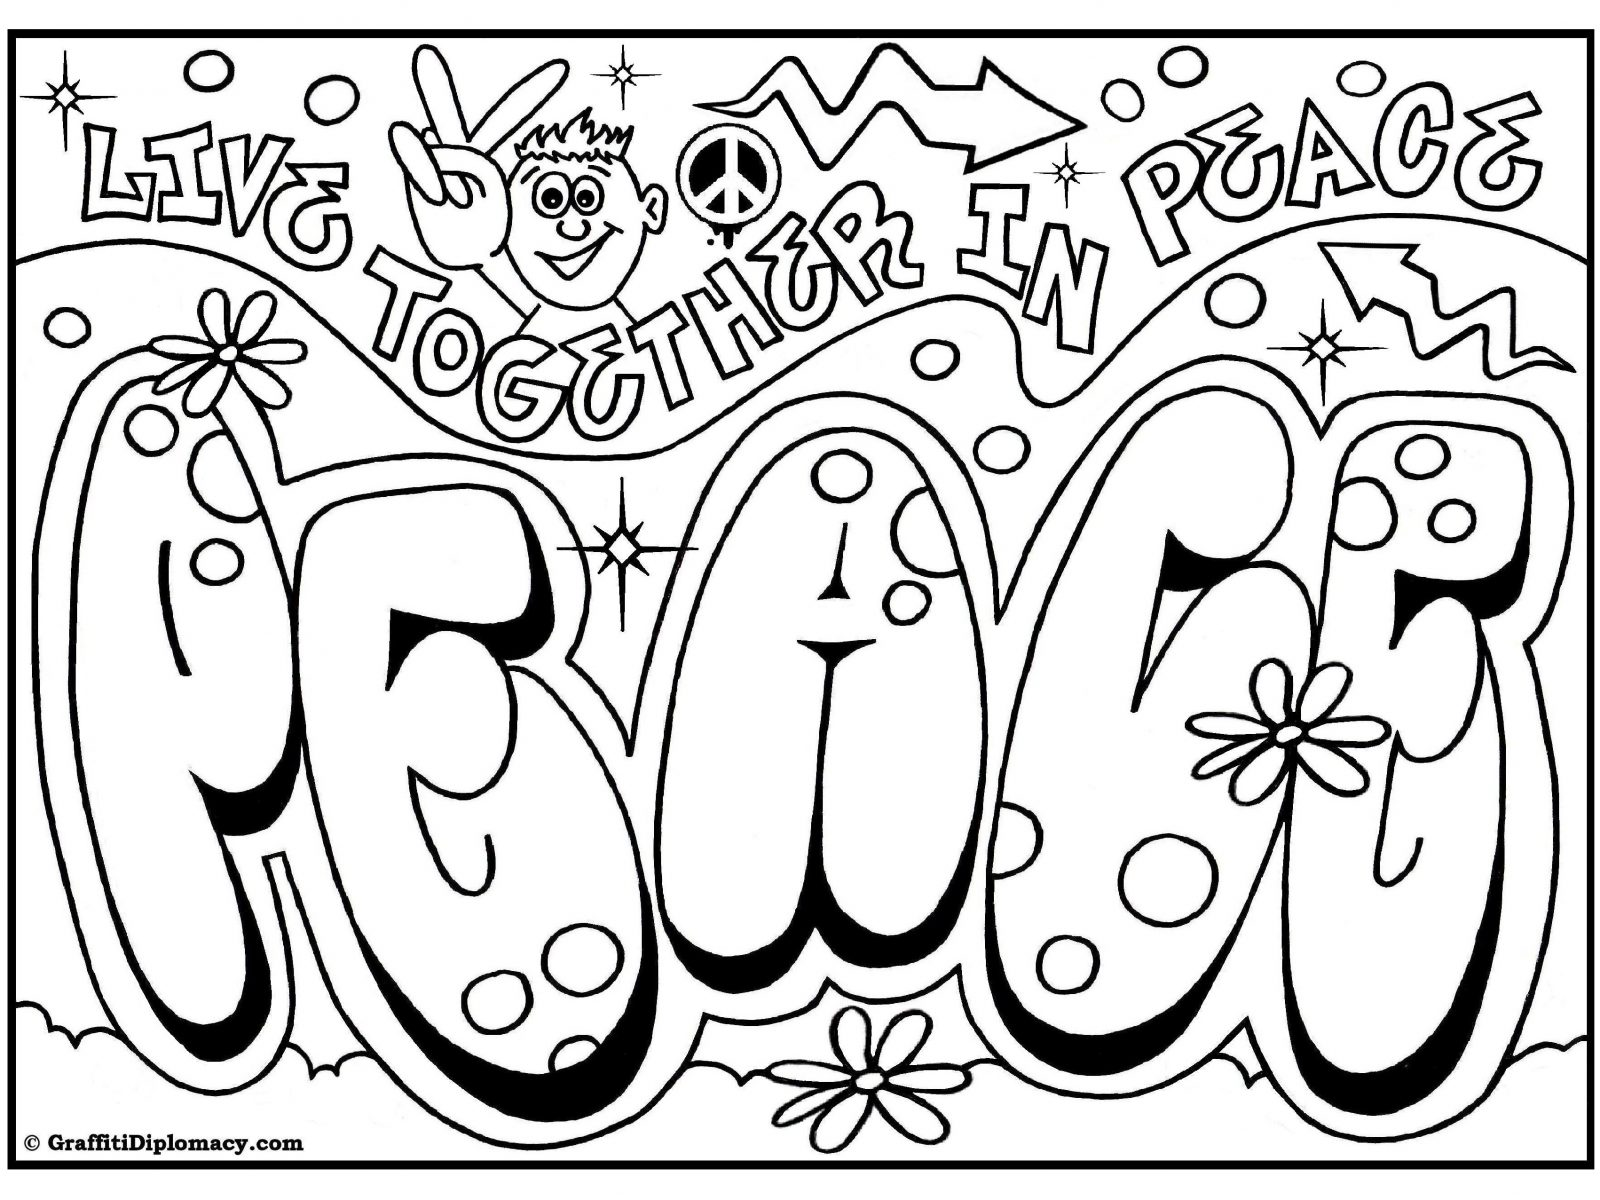 1600x1200 Coloring Graffiti Coloring Pages For Adults To Print Free Adult